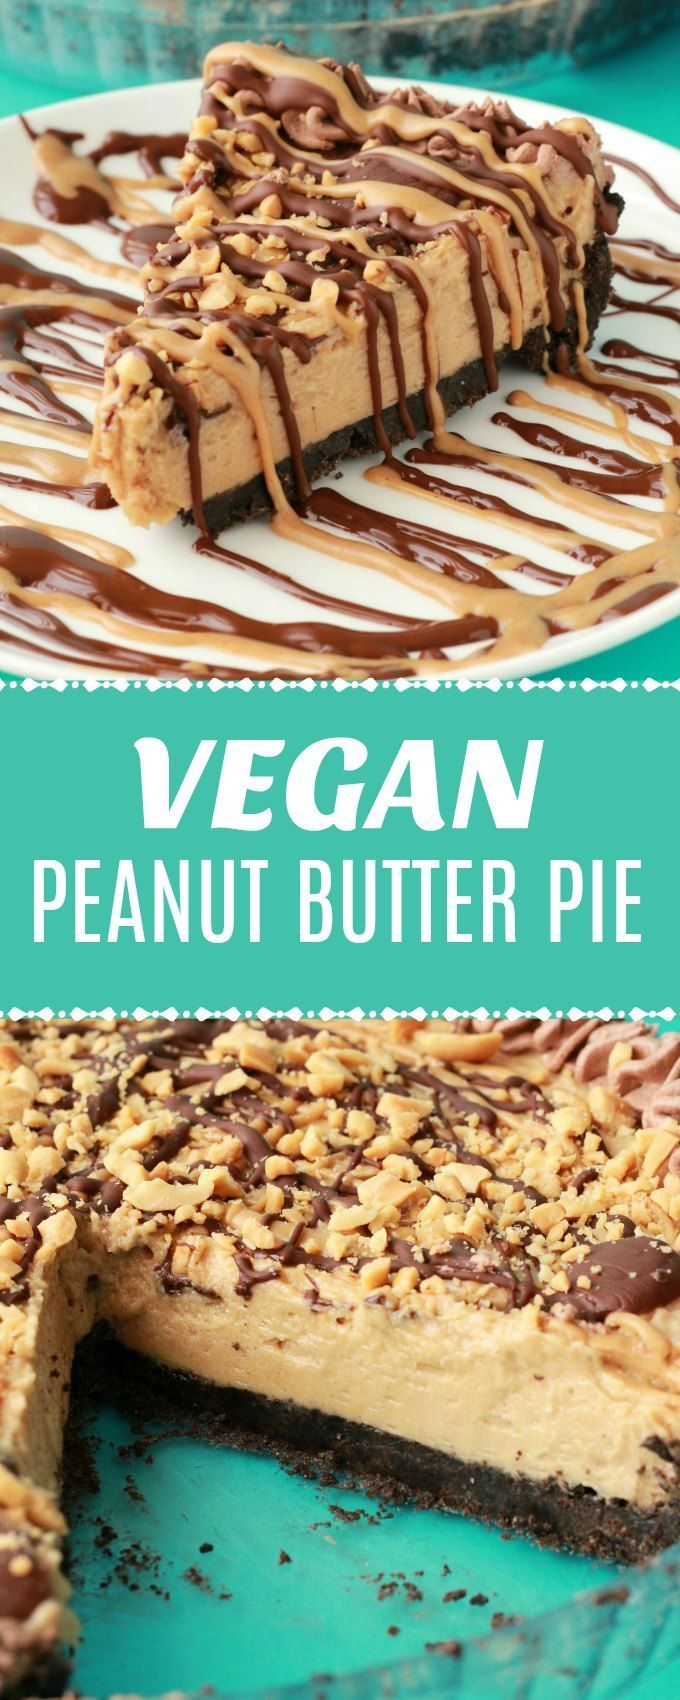 Vegan Peanut Butter Pie